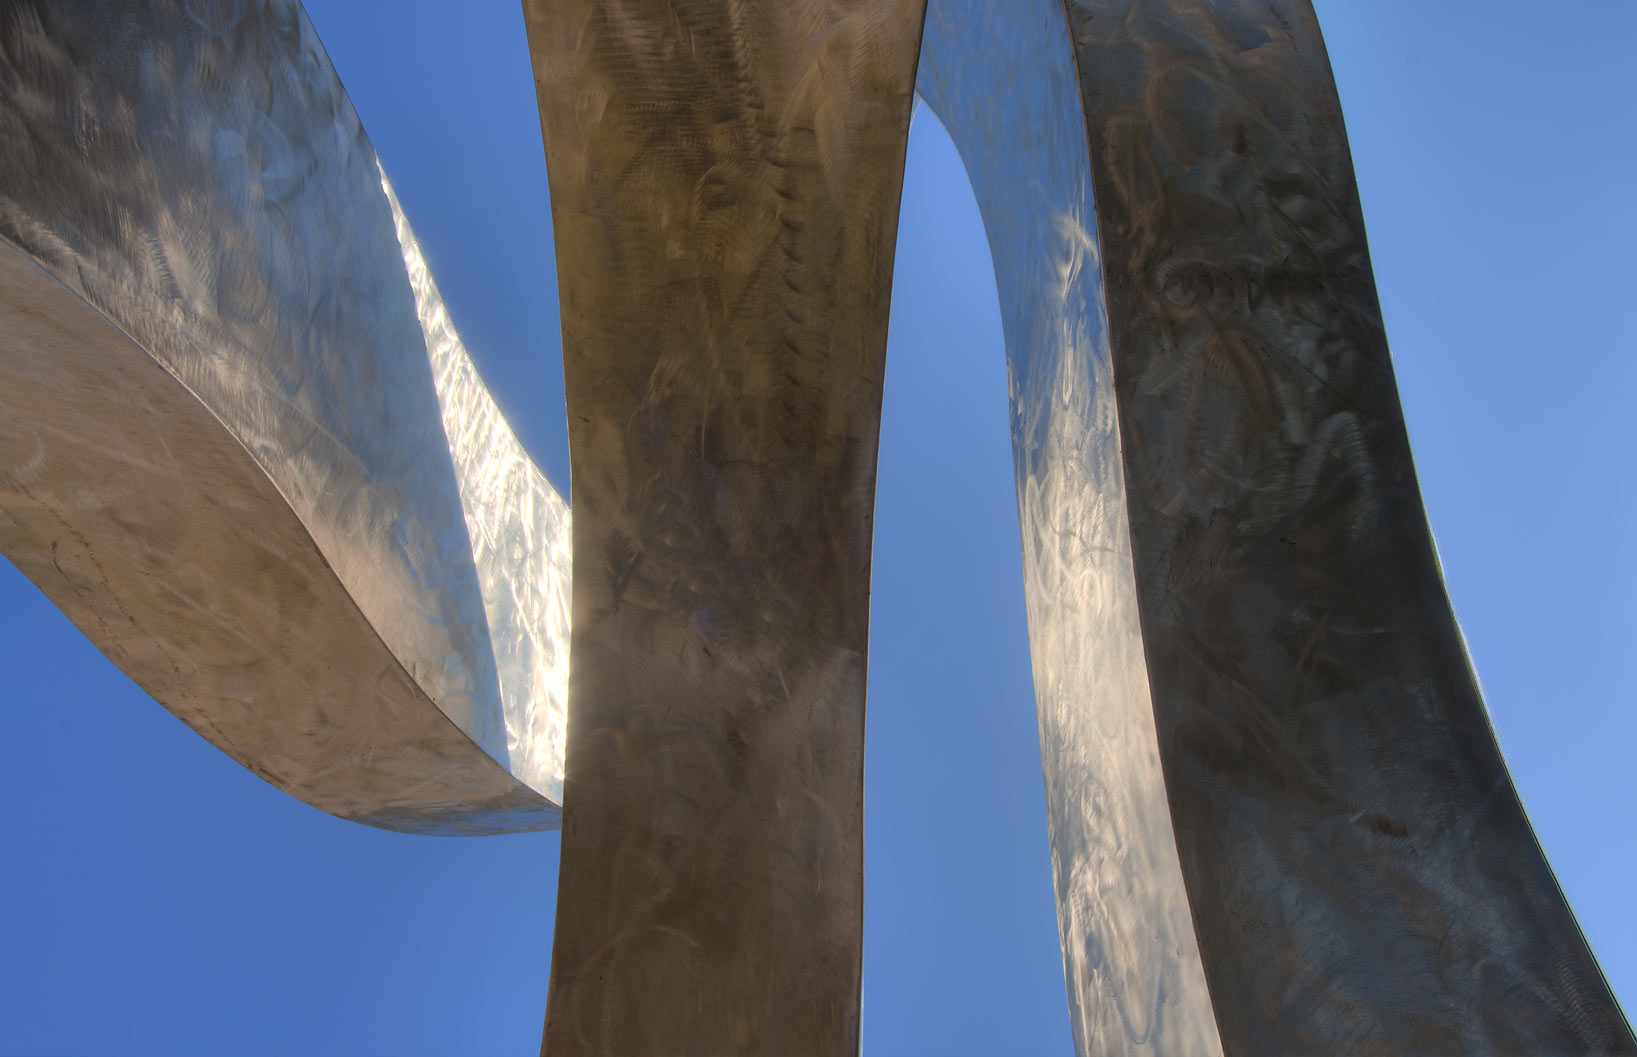 Menos stainles steel sculpture by Hans Van de...M University. College Station, Texas